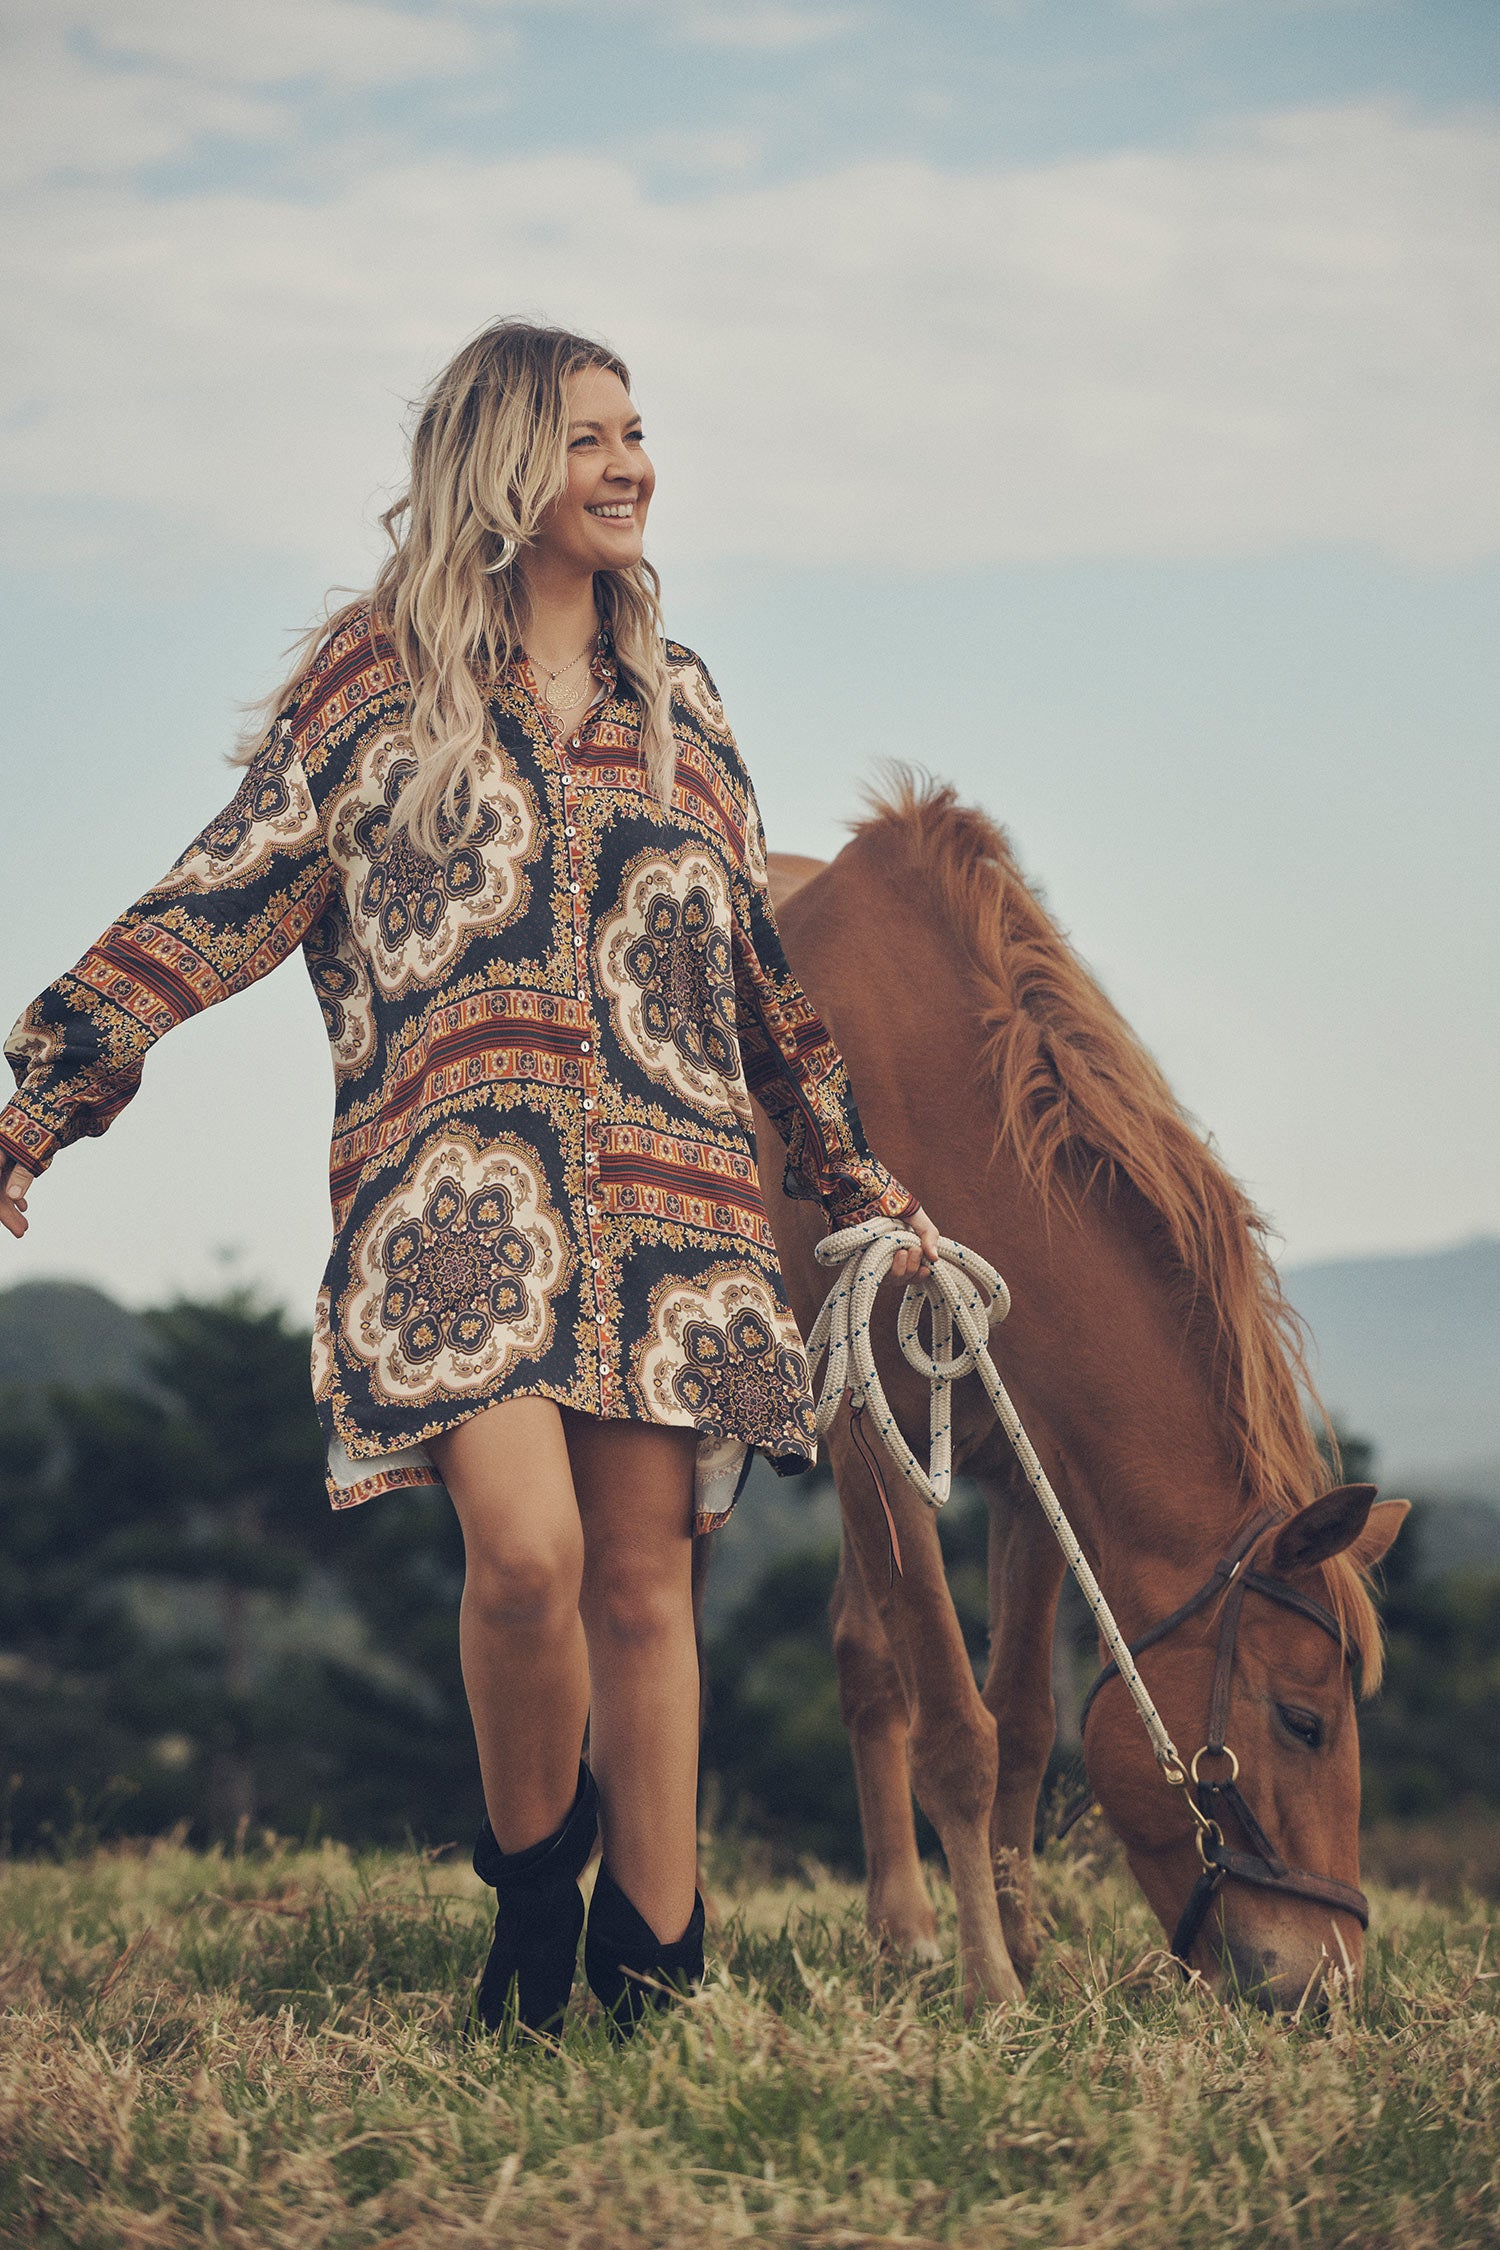 Jeweller and campaign model, Lucie Ferguson, posing in a green pasture with a brown horse while wearing gold jewellery, the Spell Cult Suede Slouch Boots and the Spell regal Rumour Print Shirt Dress.